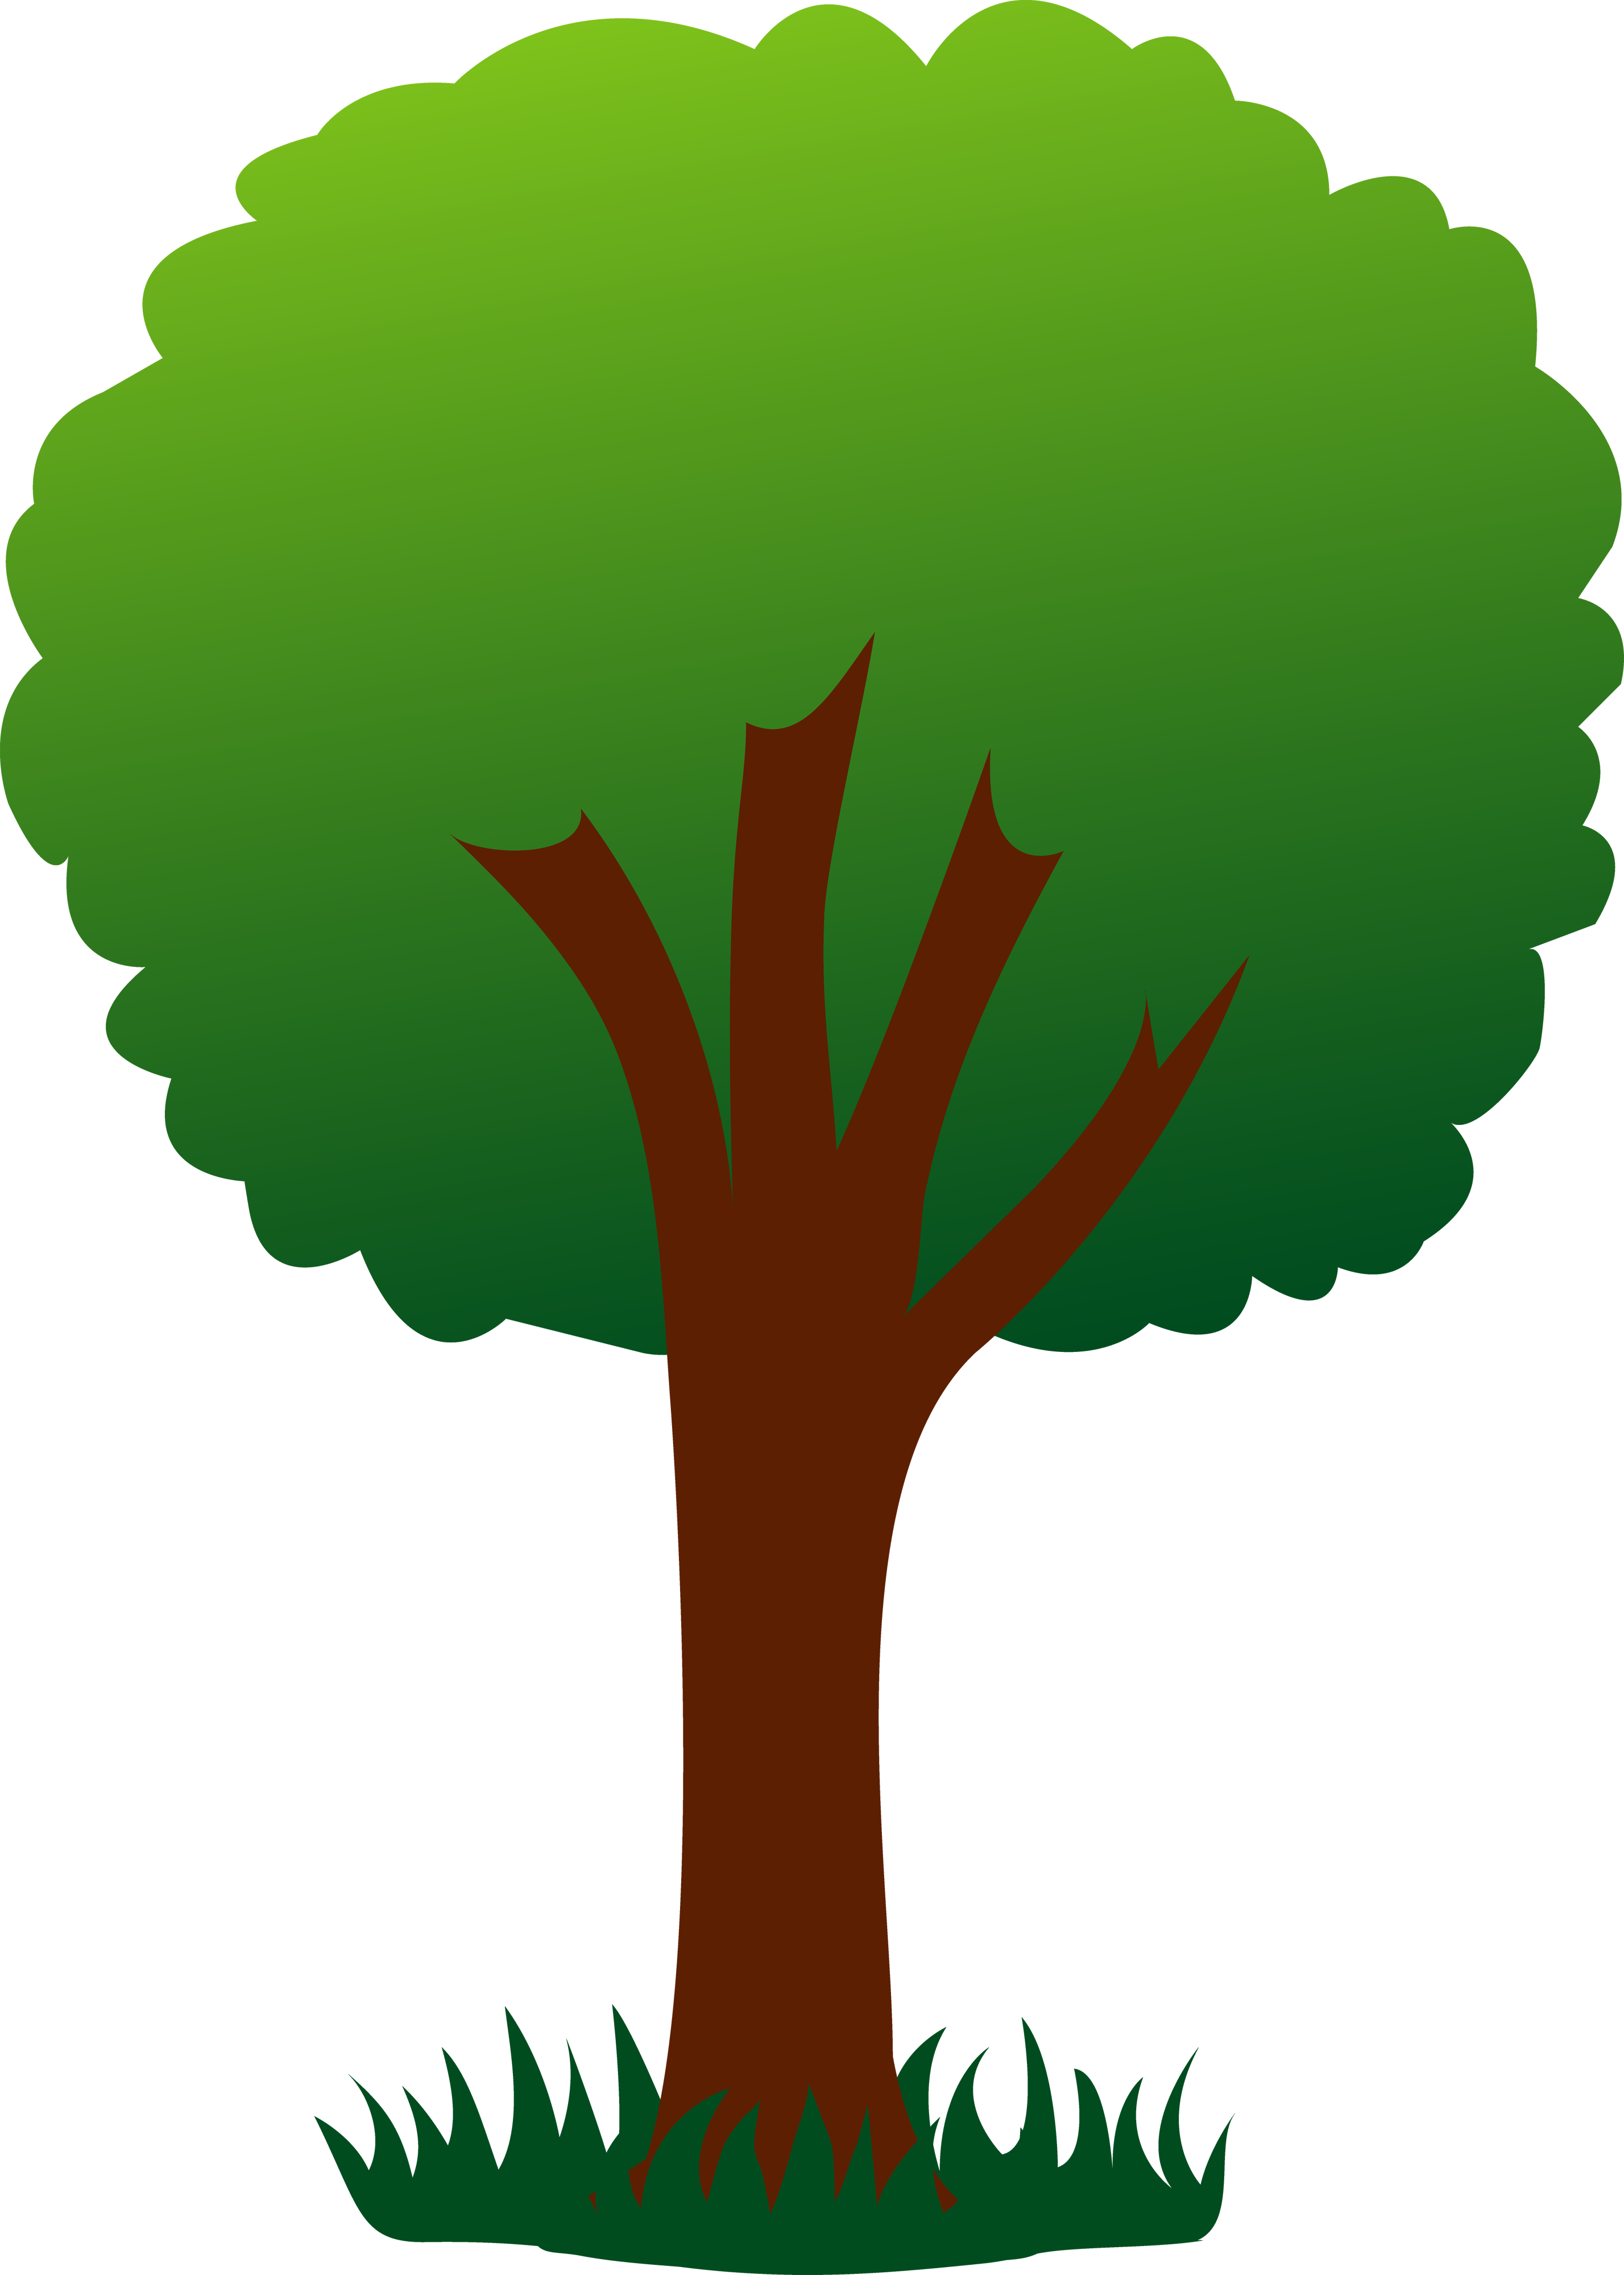 Family Tree Clipart Clipart Free Clipart Image